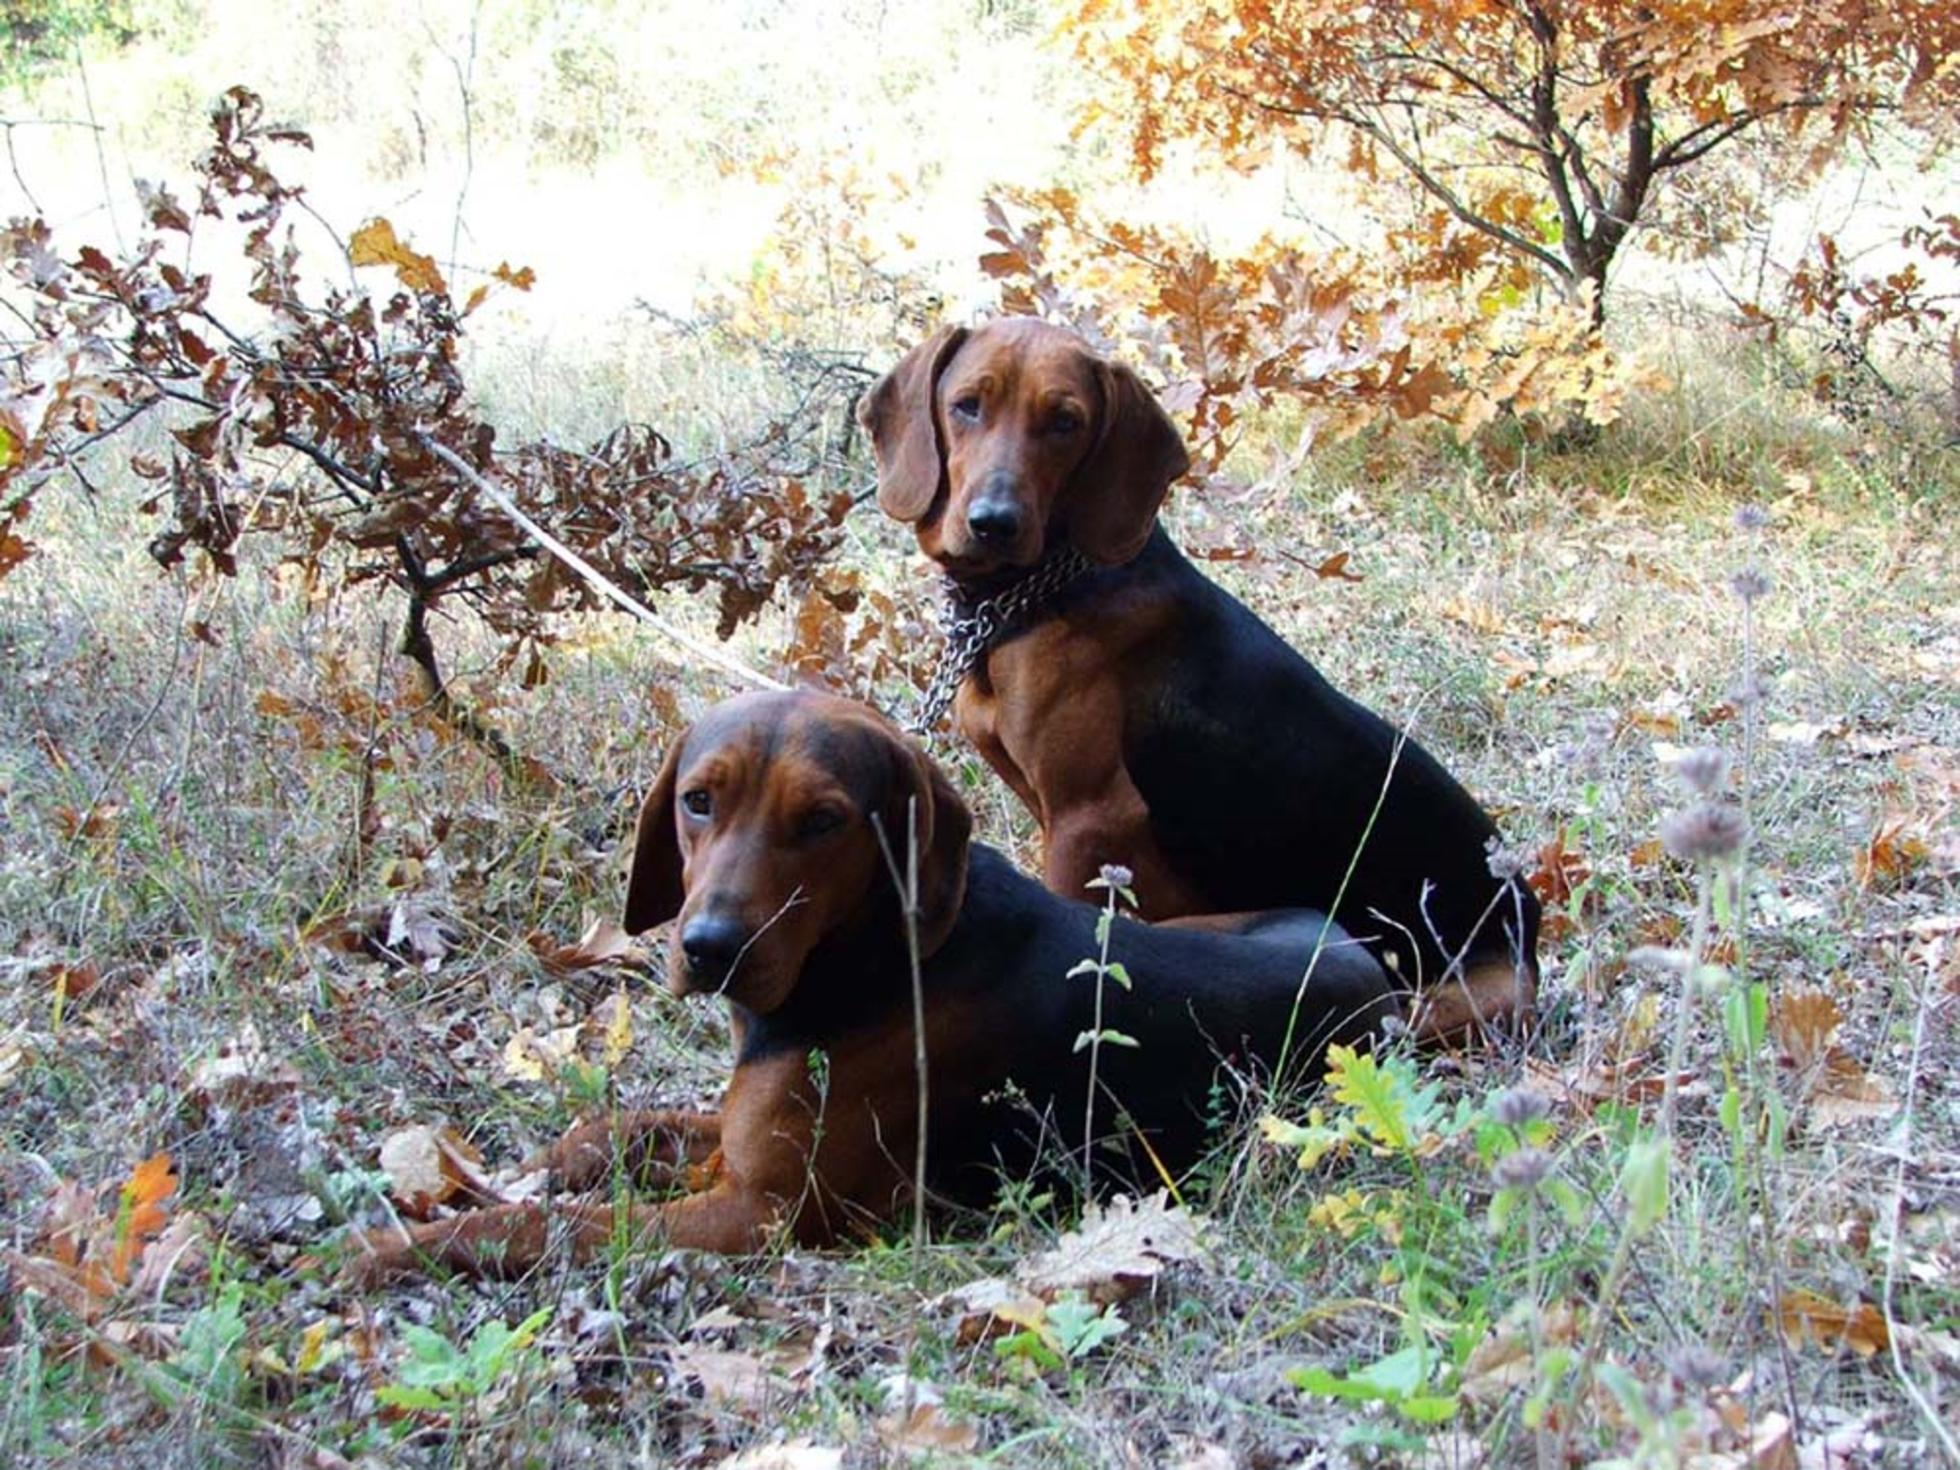 Sinhala Hound Dog: Sinhala Serbian Hound Dogs Breed